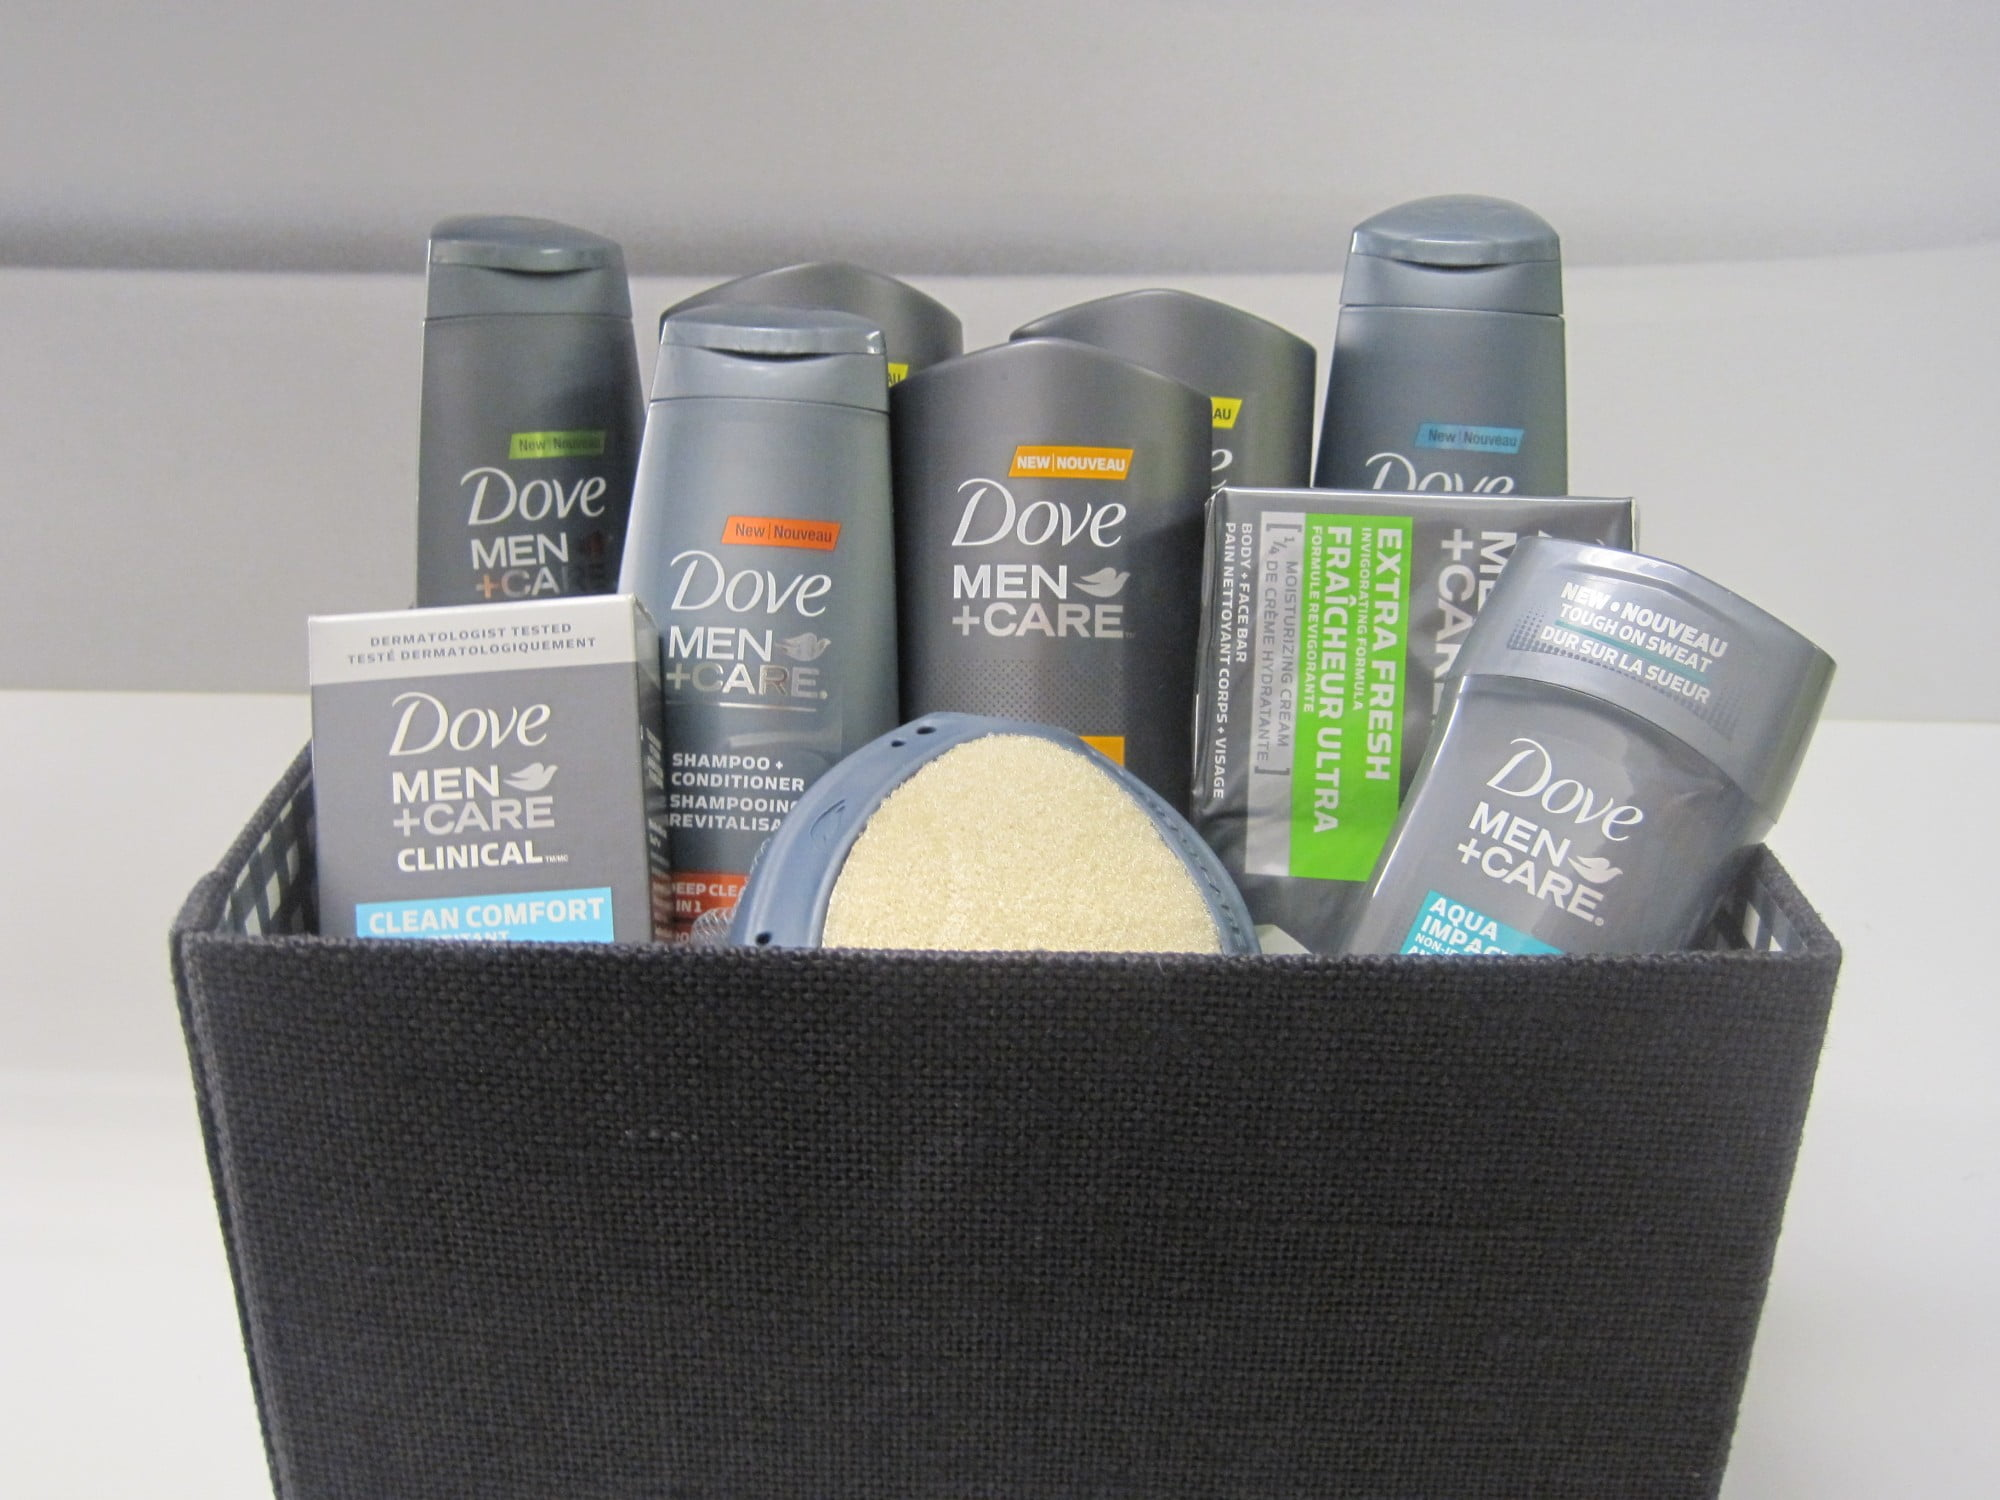 canutillo Isd as well Holiday Giveaway Dove Mencare Gift Basket moreover S284887 furthermore Forum posts also Audi A4 2003 Dashboard Sign 53575. on oscar gift baskets 2017